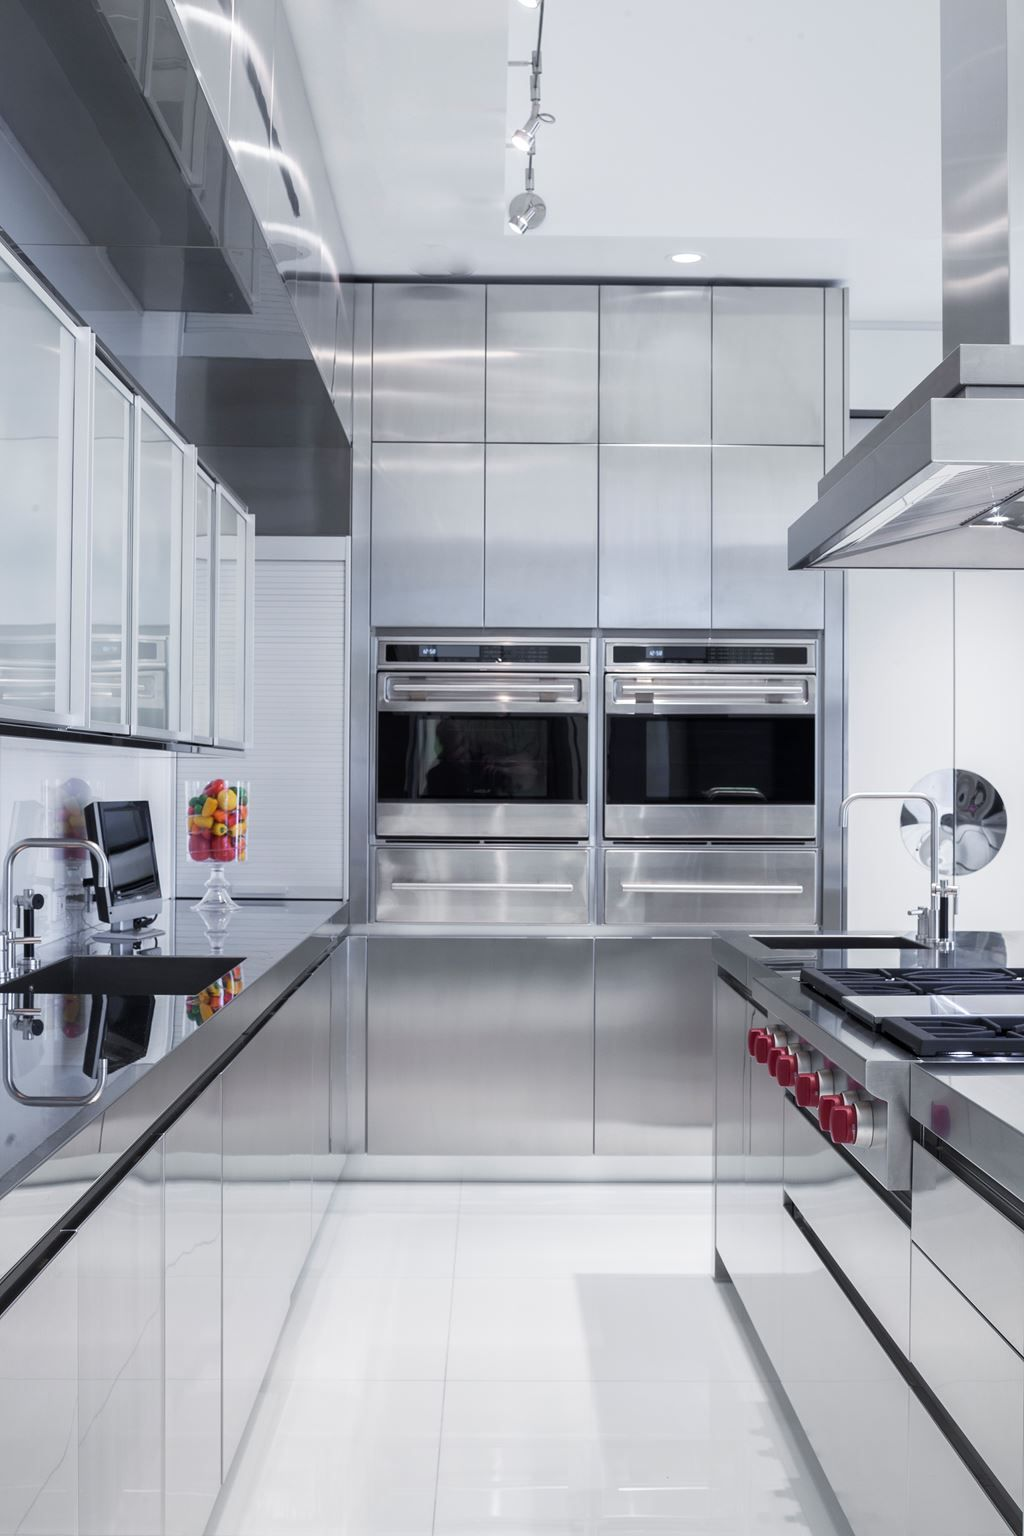 High End Stainless Steel Kitchen With Built In Appliances In 2020 Contemporary Kitchen Design Mirrored Kitchen Cabinet Contemporary Kitchen